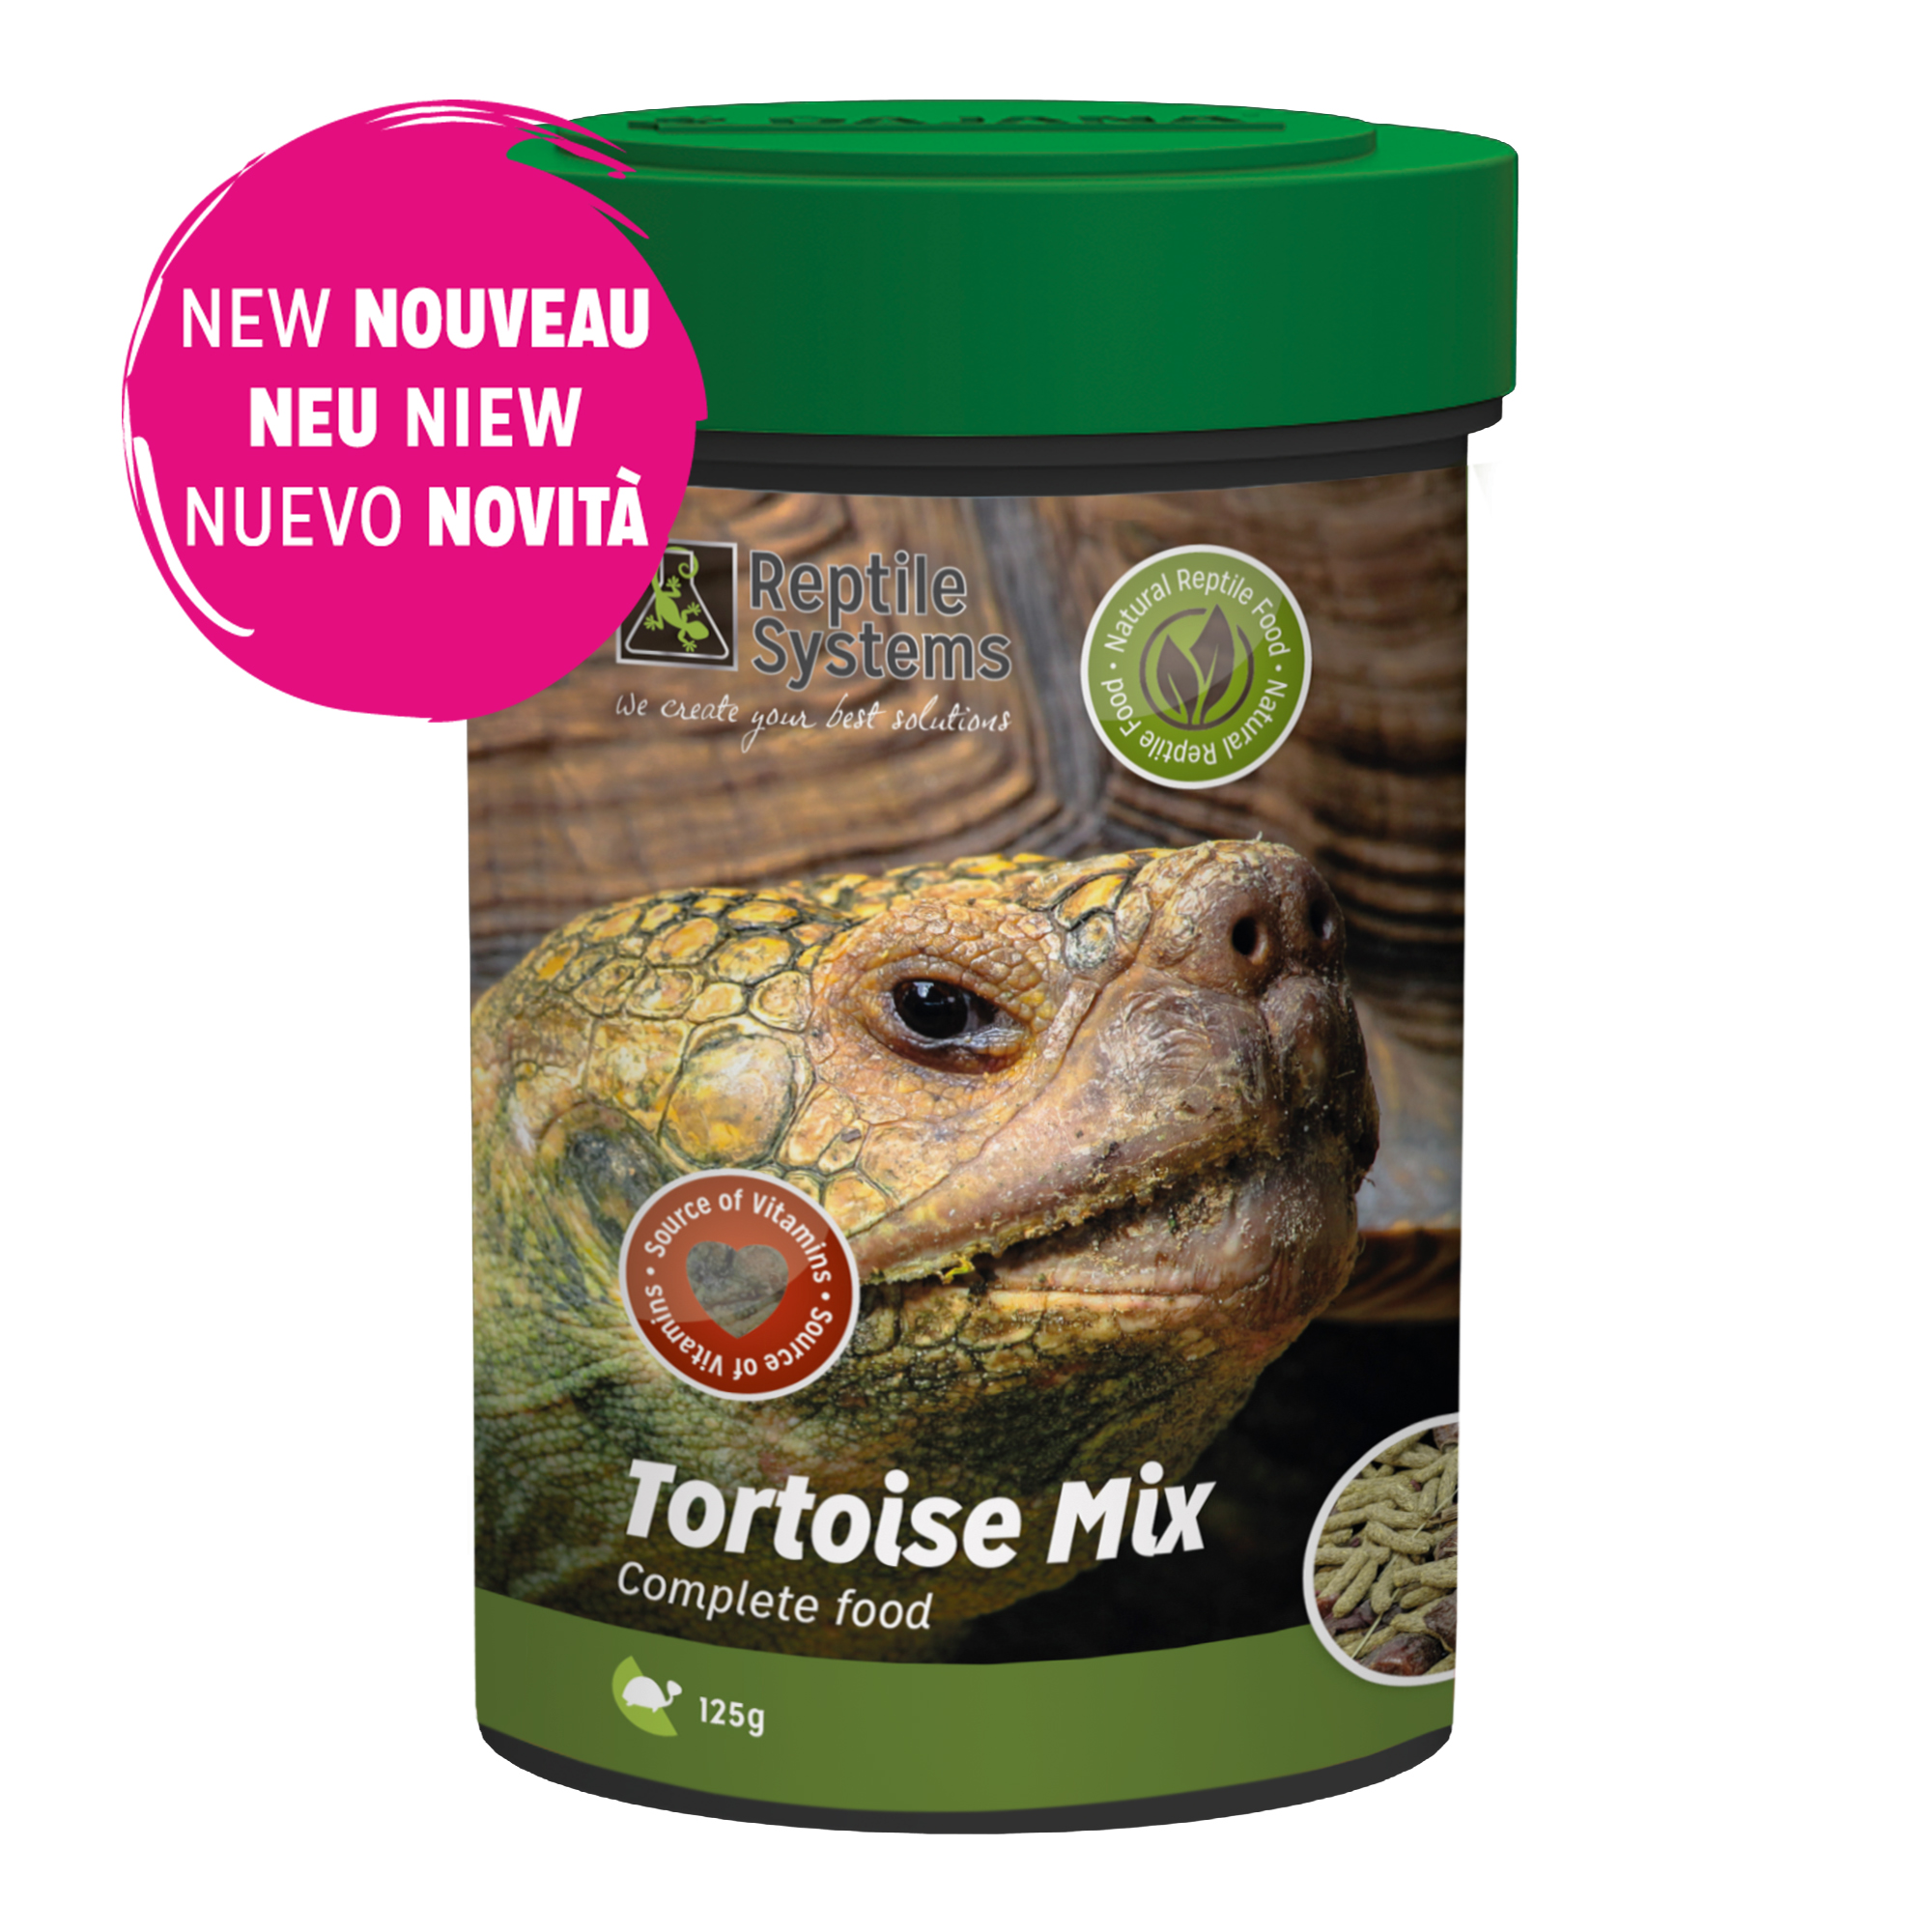 Tortoise Mix UK